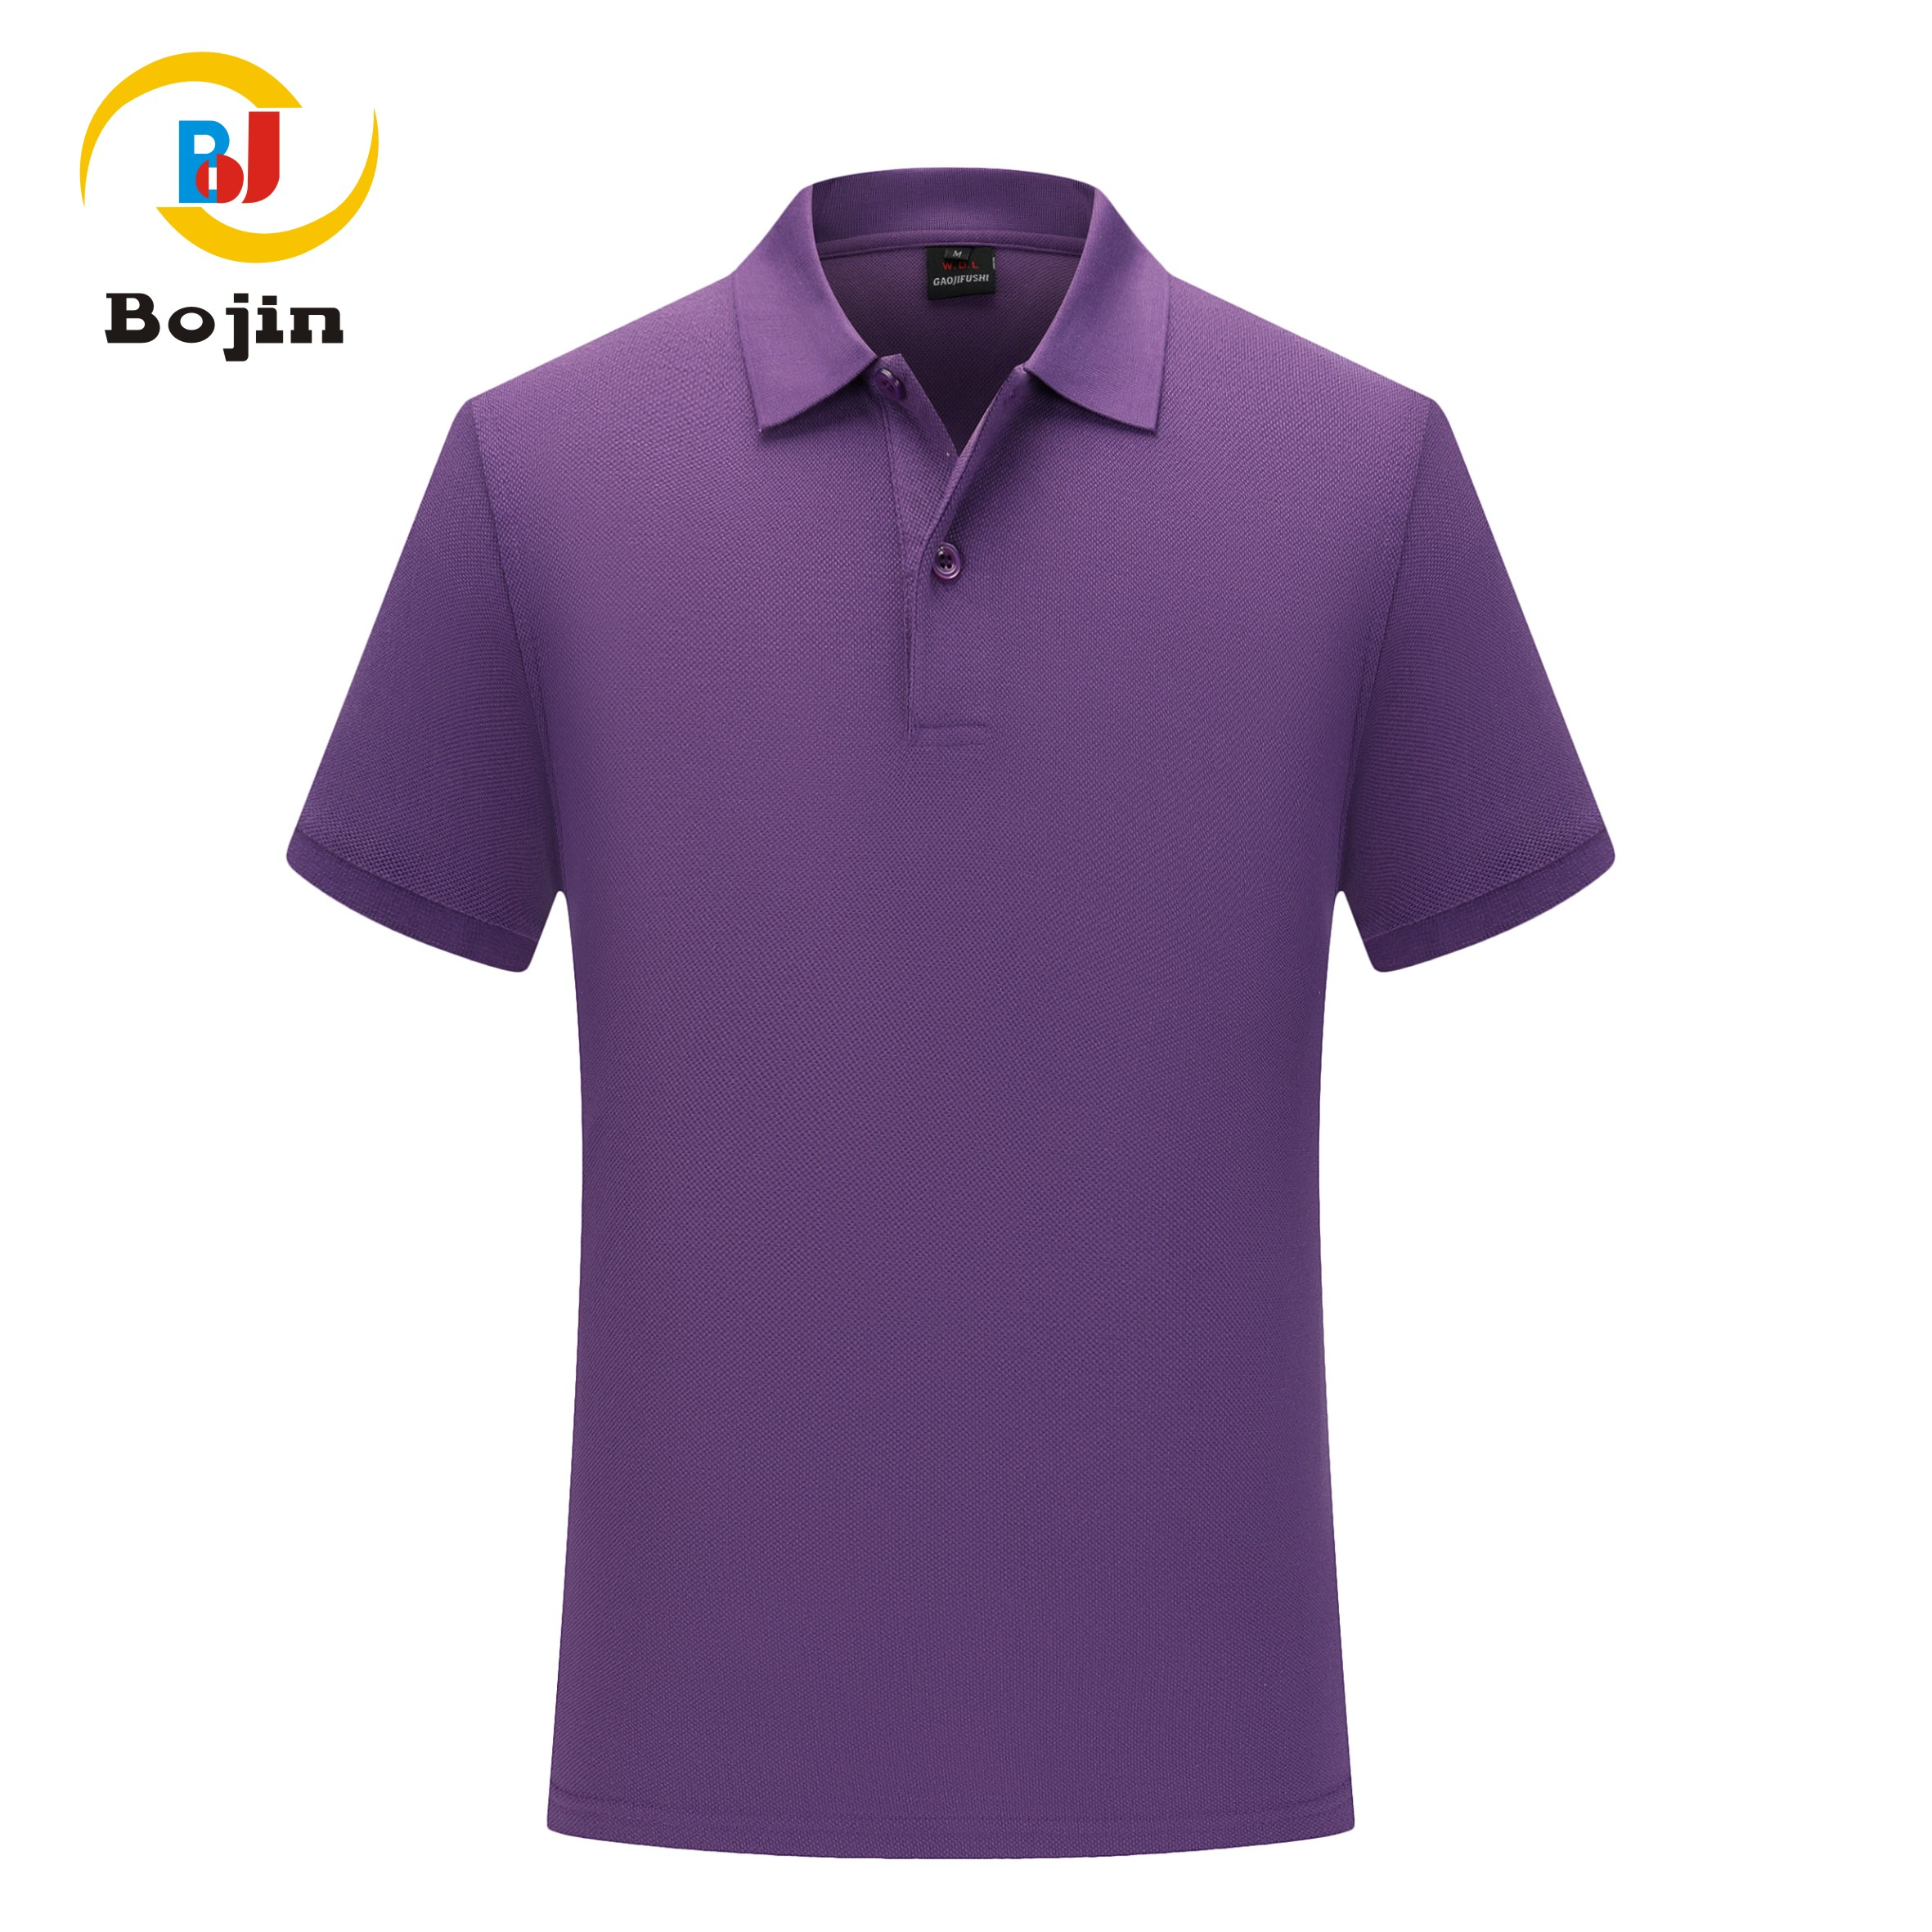 Bojin NEW product custom promotional <strong>clothing</strong> <strong>manufacturers</strong>